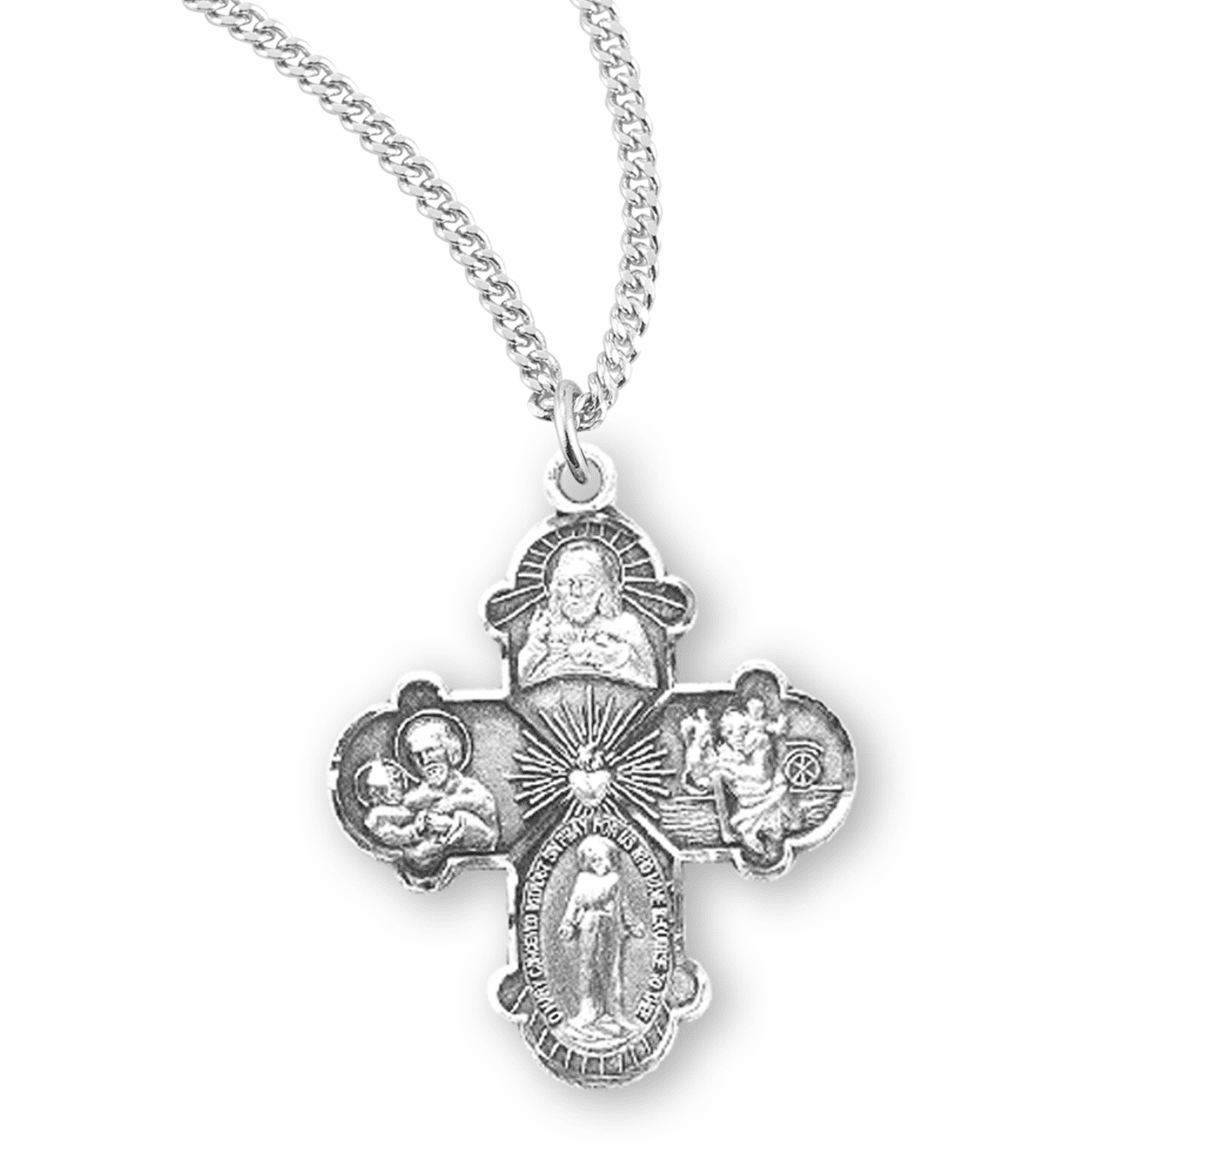 Four-Way Sterling Cross Medal Necklace w/Dove Center by HMH Religious